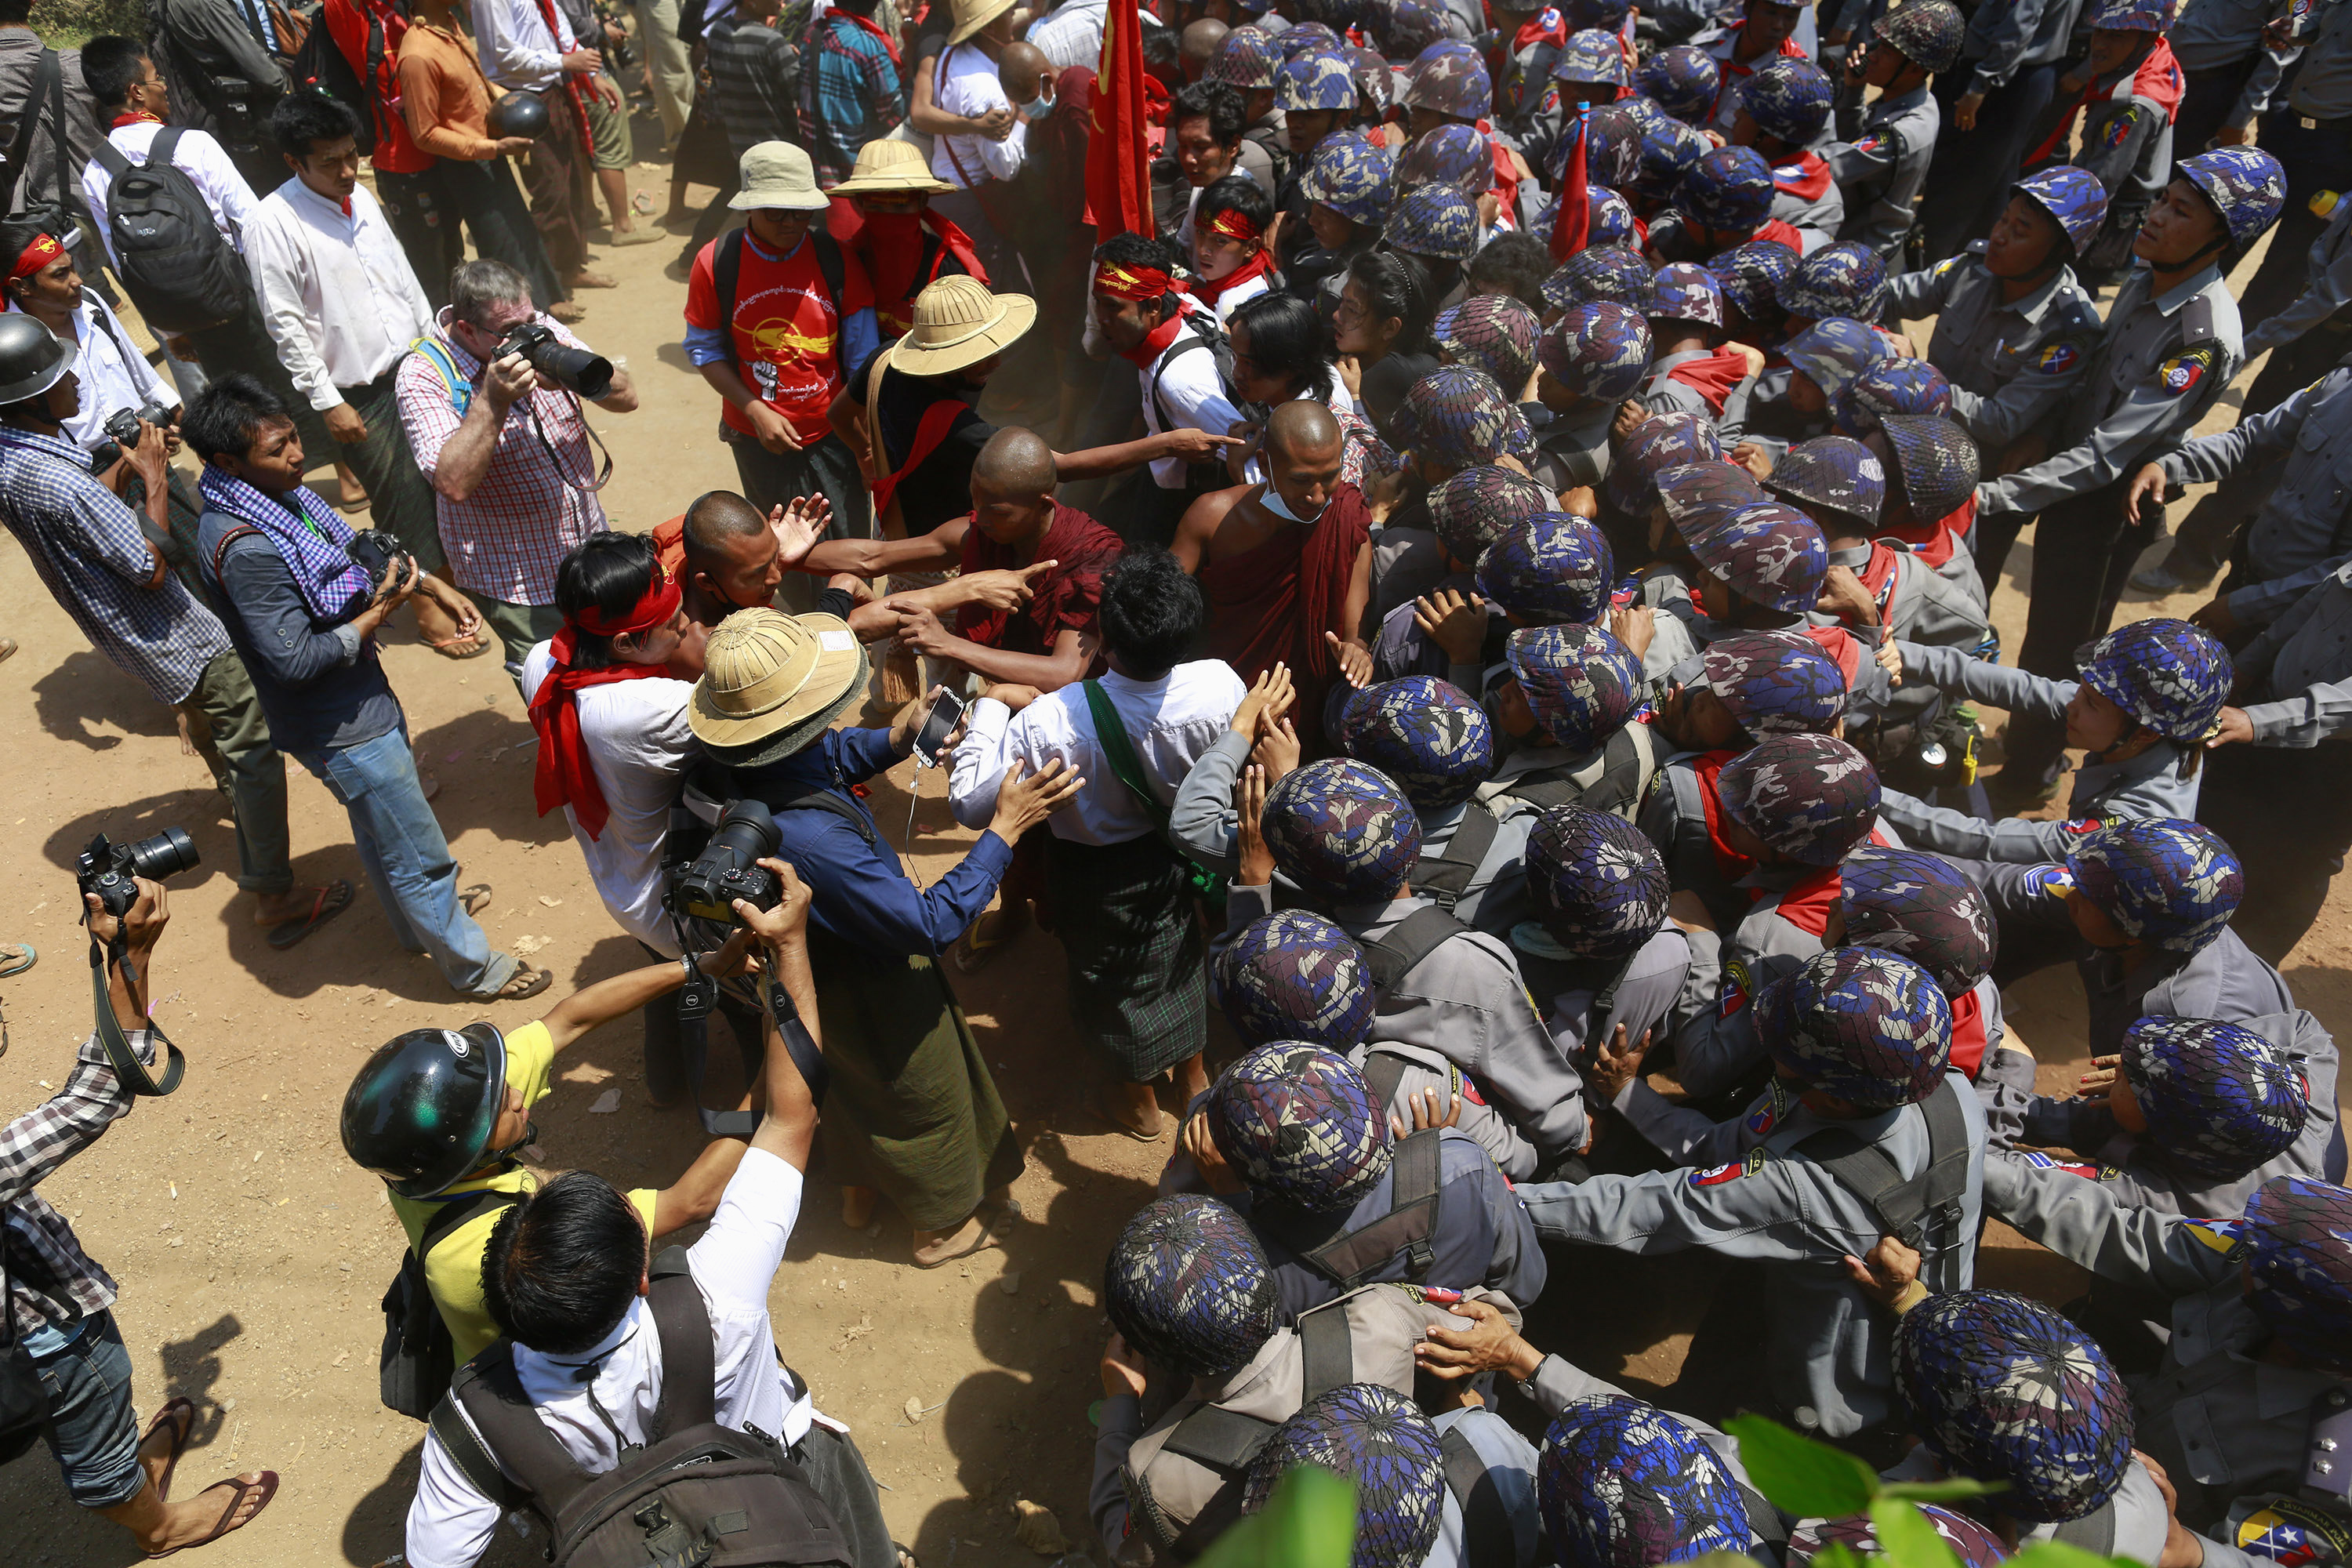 Buddhist monks and student protesters push as they try to break a police line in Letpadan on March 10, 2015. (Photo: Reuters)